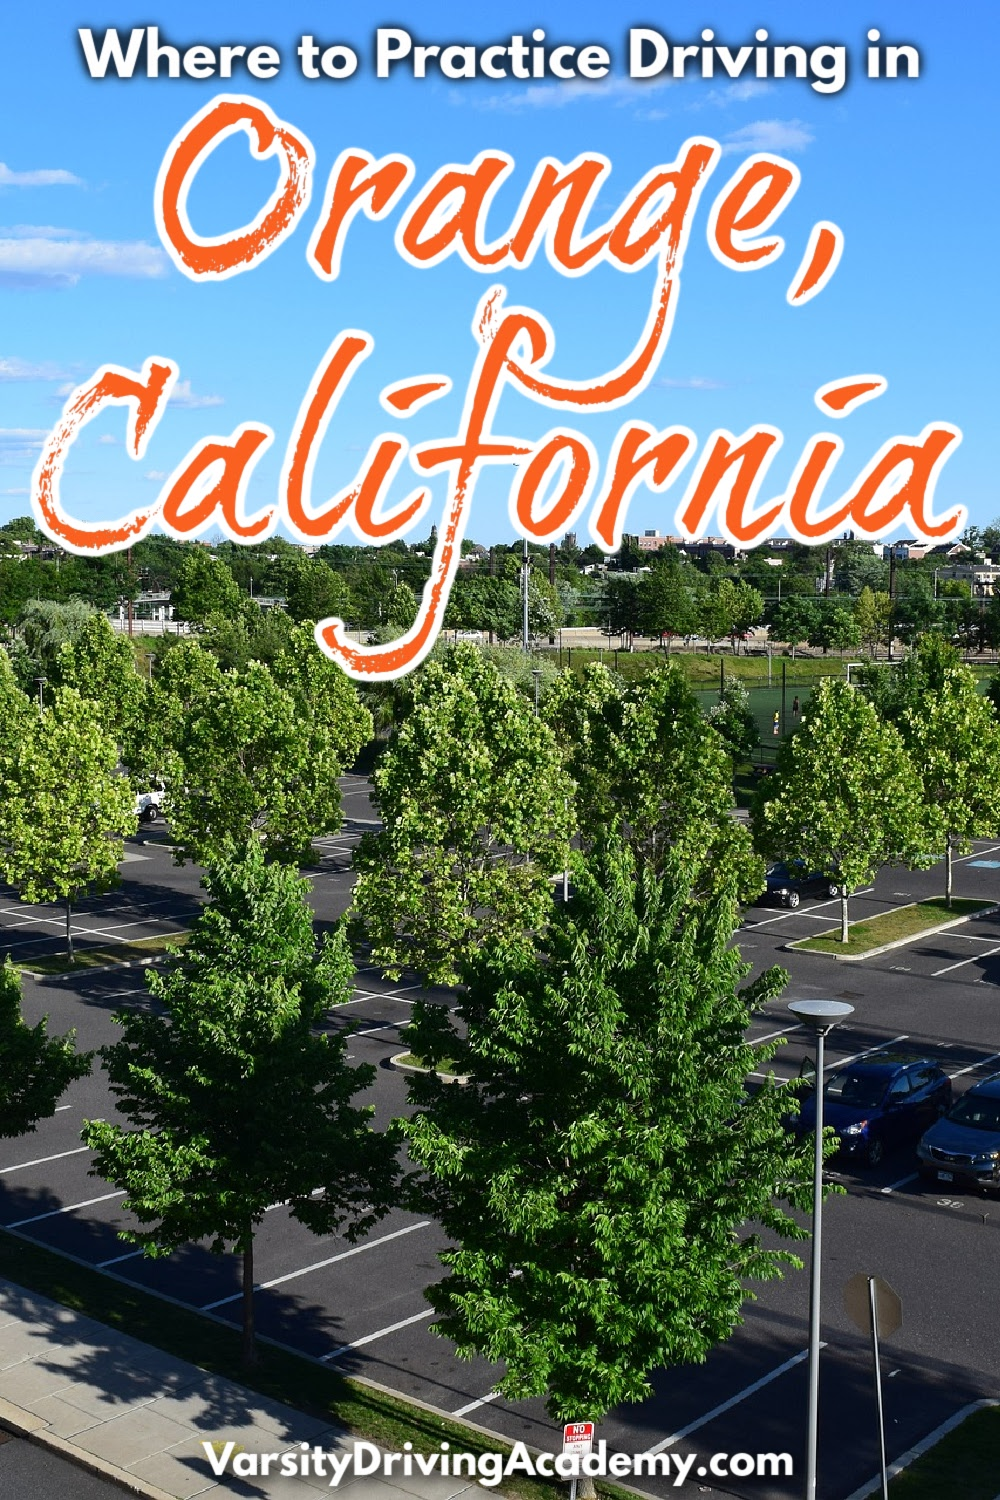 Knowing where to practice driving in Orange California is a great starting point to study for the final test at the DMV.